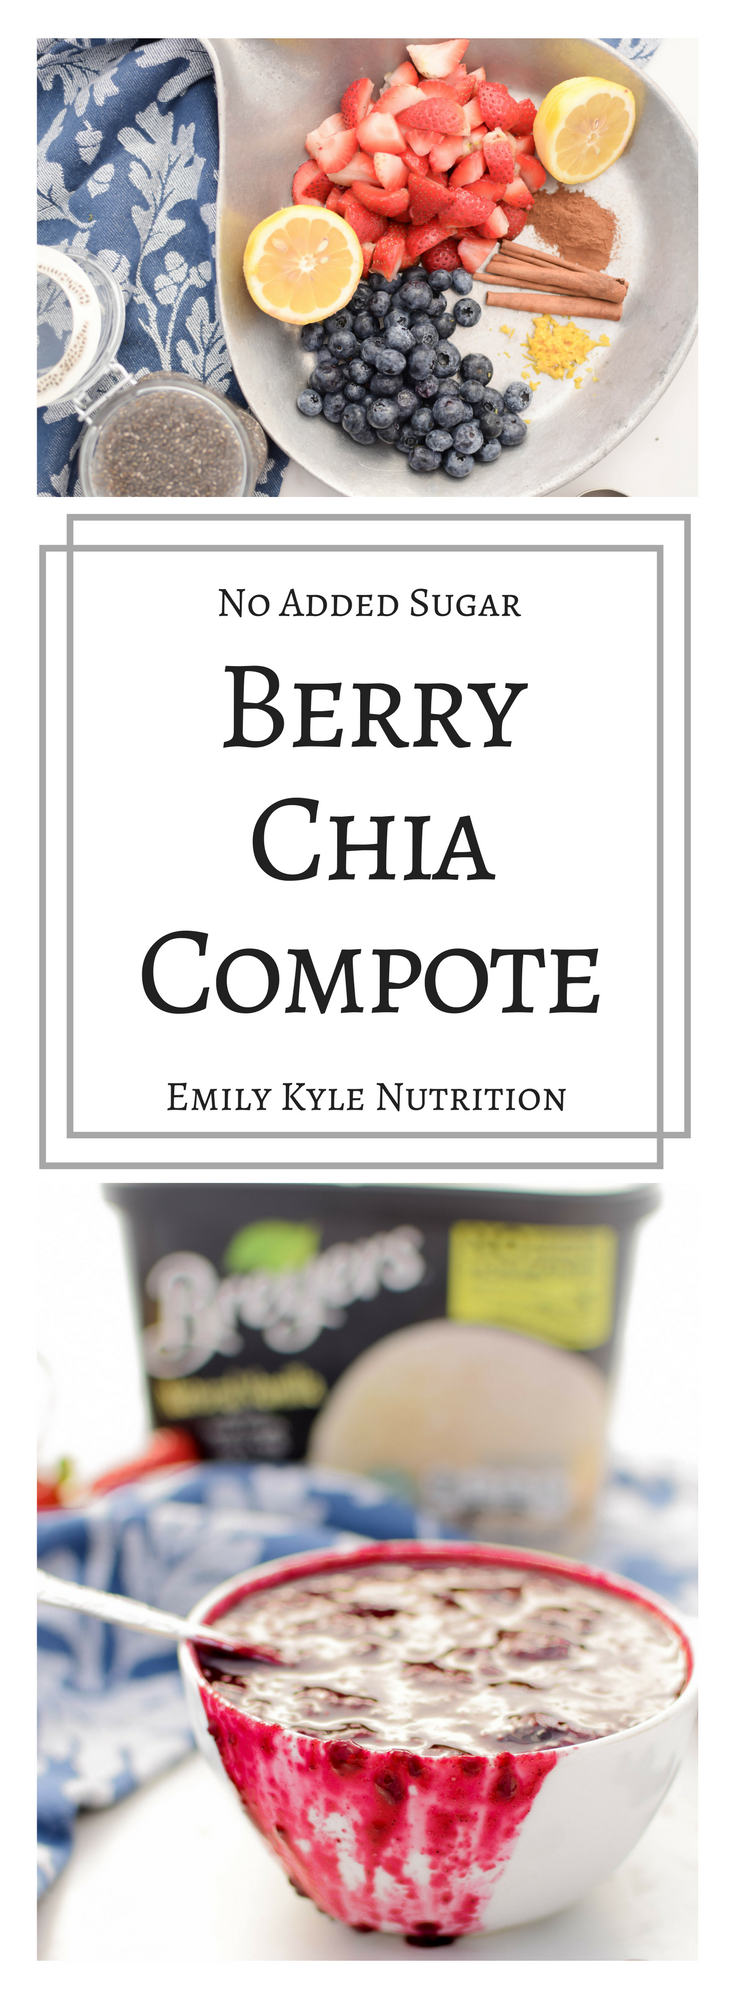 Make your own no-added sugar Berry Chia Compote with just a few simple ingredients to enjoy with all of your favorite teats like yogurt, oatmeal, or ice cream! | #proundpartner of Breyers Natural Vanilla Ice Cream